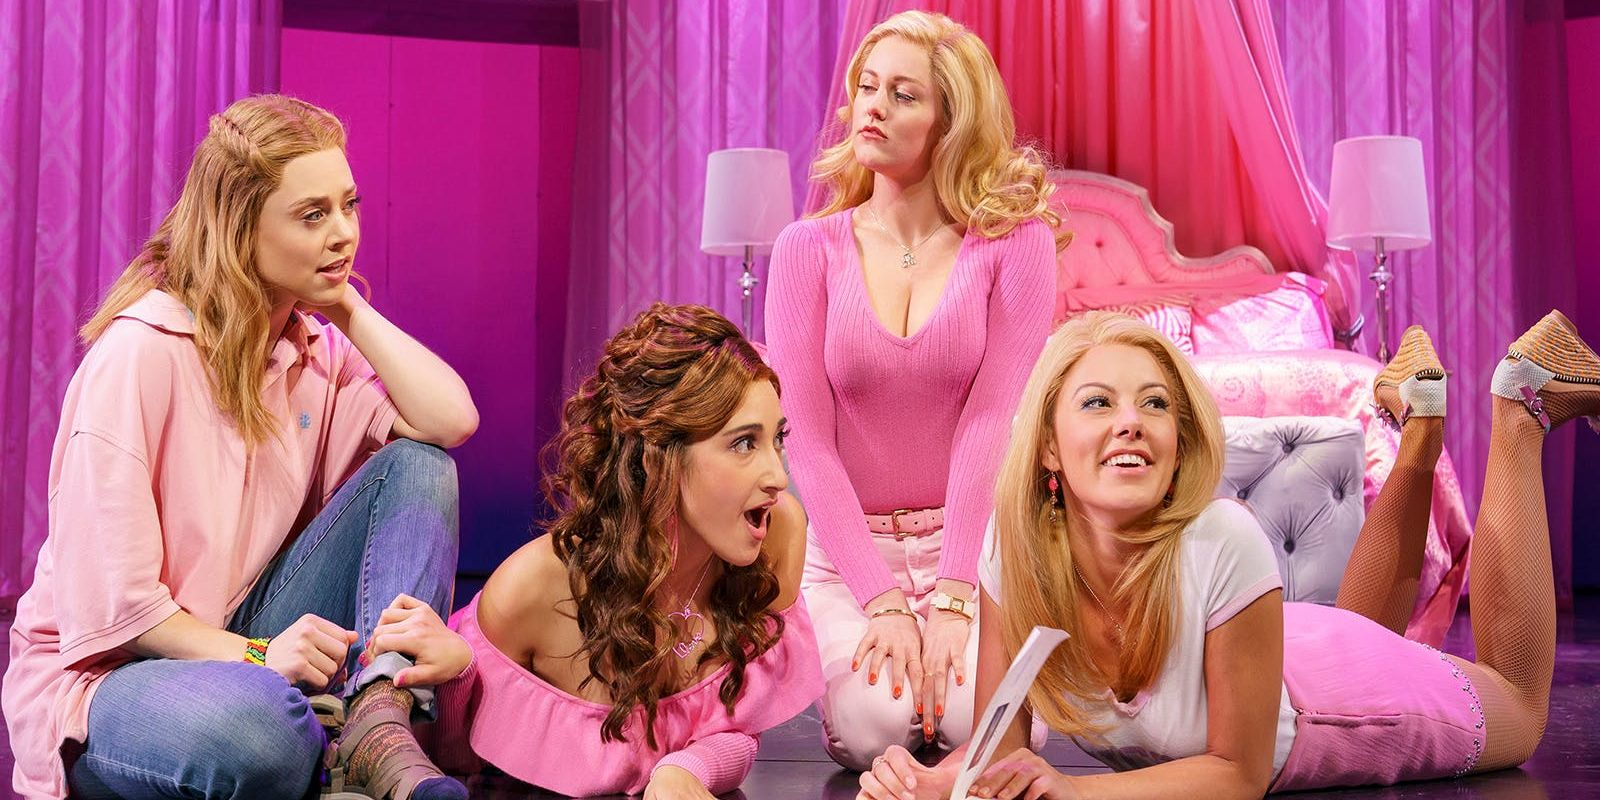 Mean Girls Movie Remake In Development, Inspired By Stage Musical